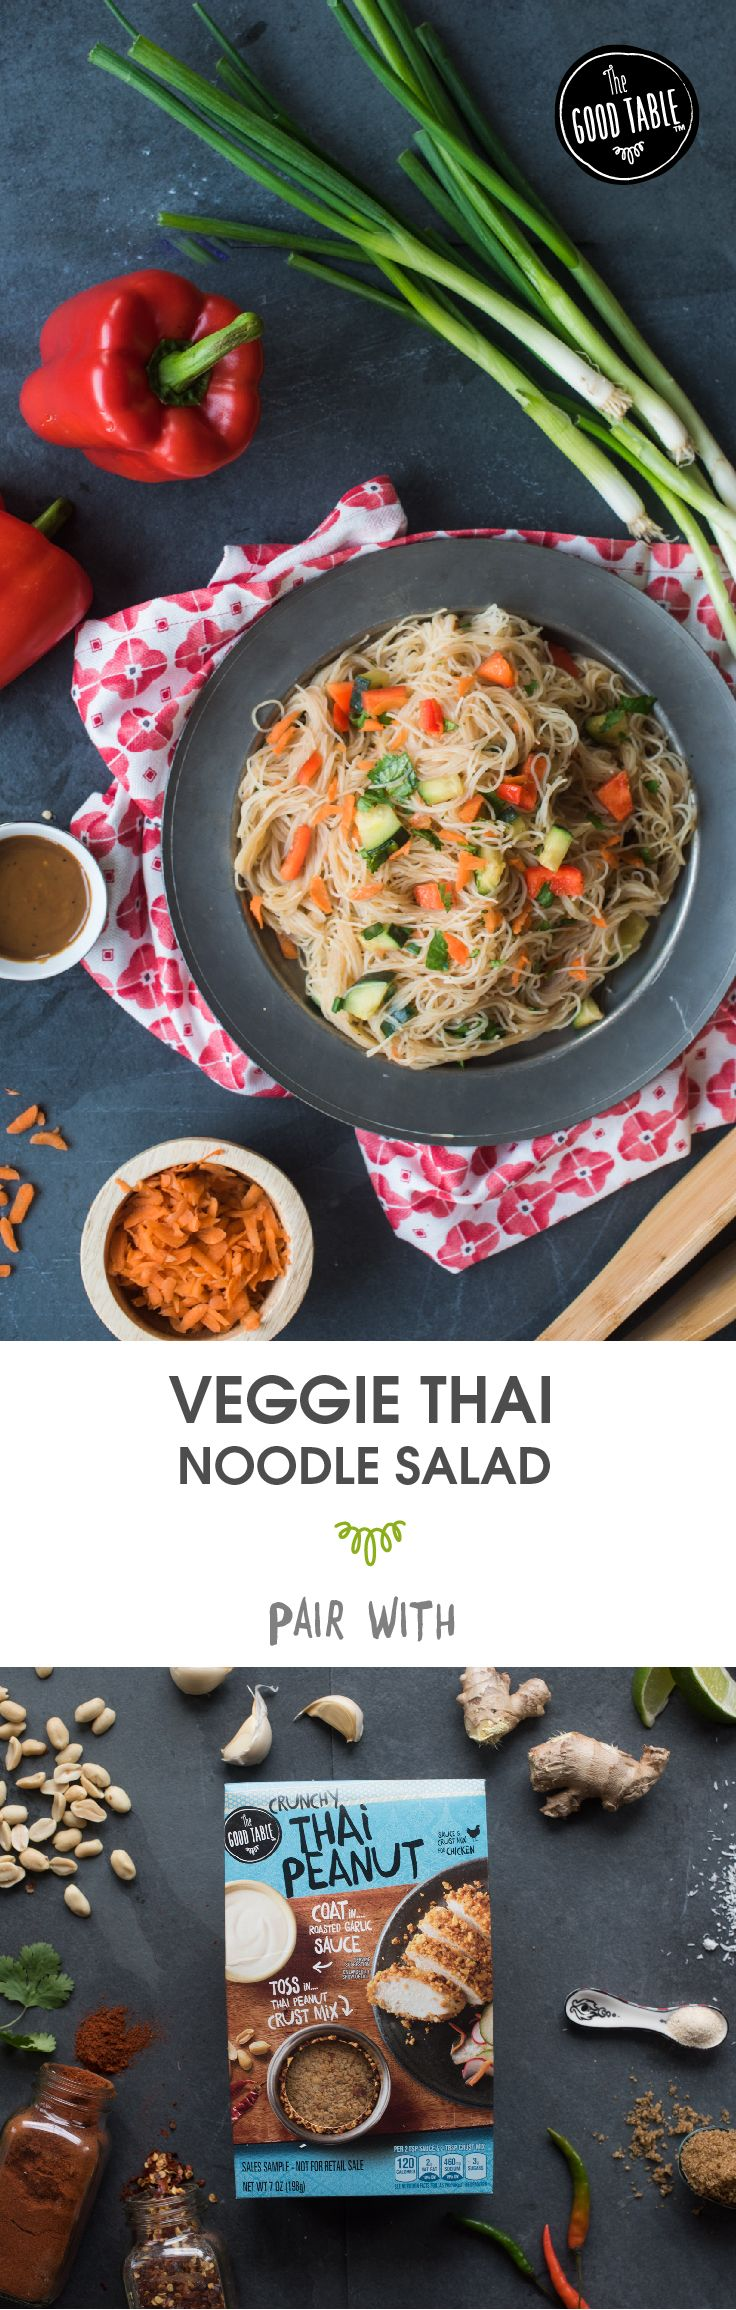 Break the routine with The Good Table Crunchy Thai Peanut Chicken paired with this yummy kid-friendly Veggie Thai Noodle Salad! Link to The Good Table product locator and recipe for Veggie Thai Noodle Salad at TheGoodTableFoods.com